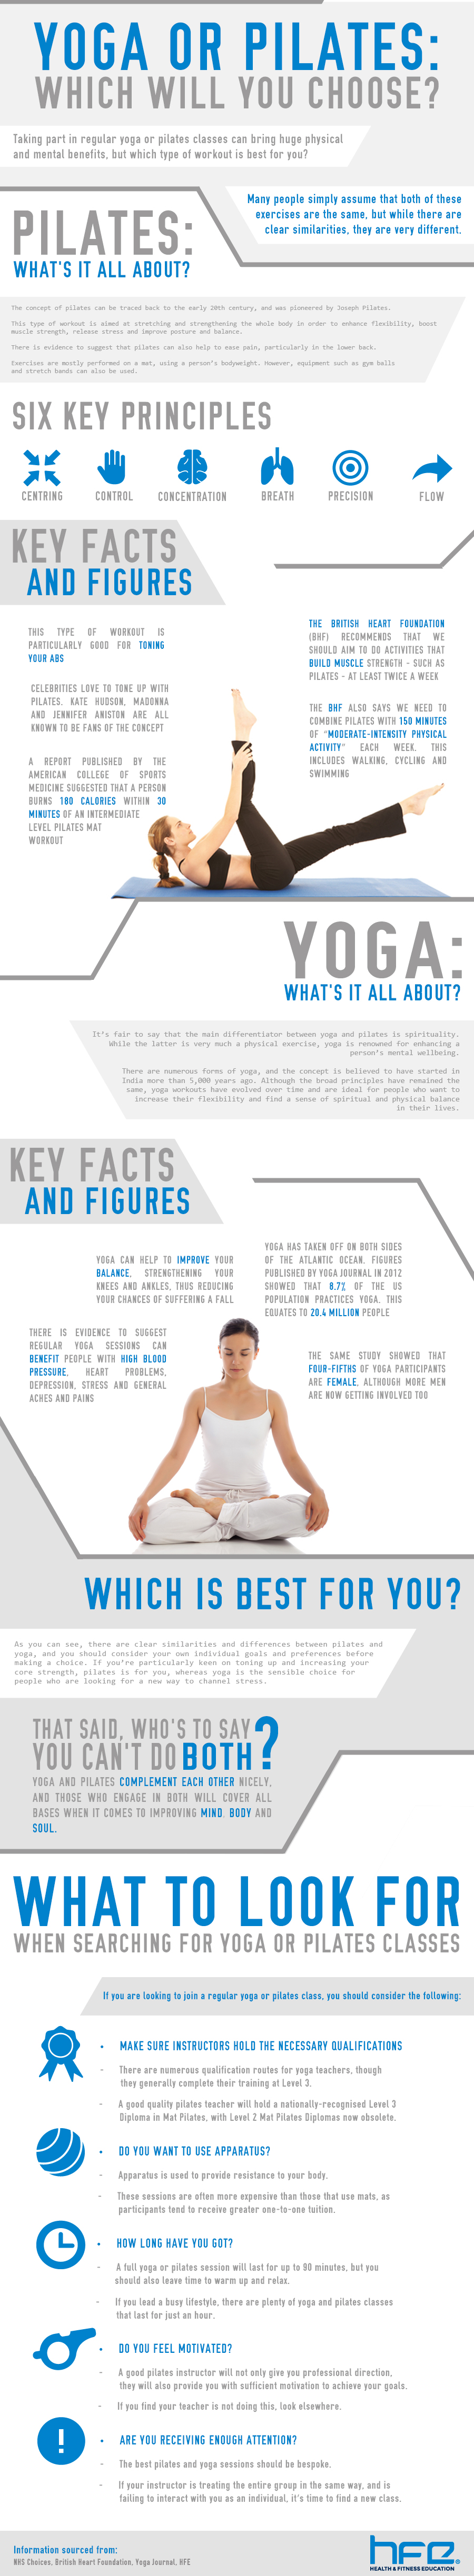 Yoga and Pilates Infographic